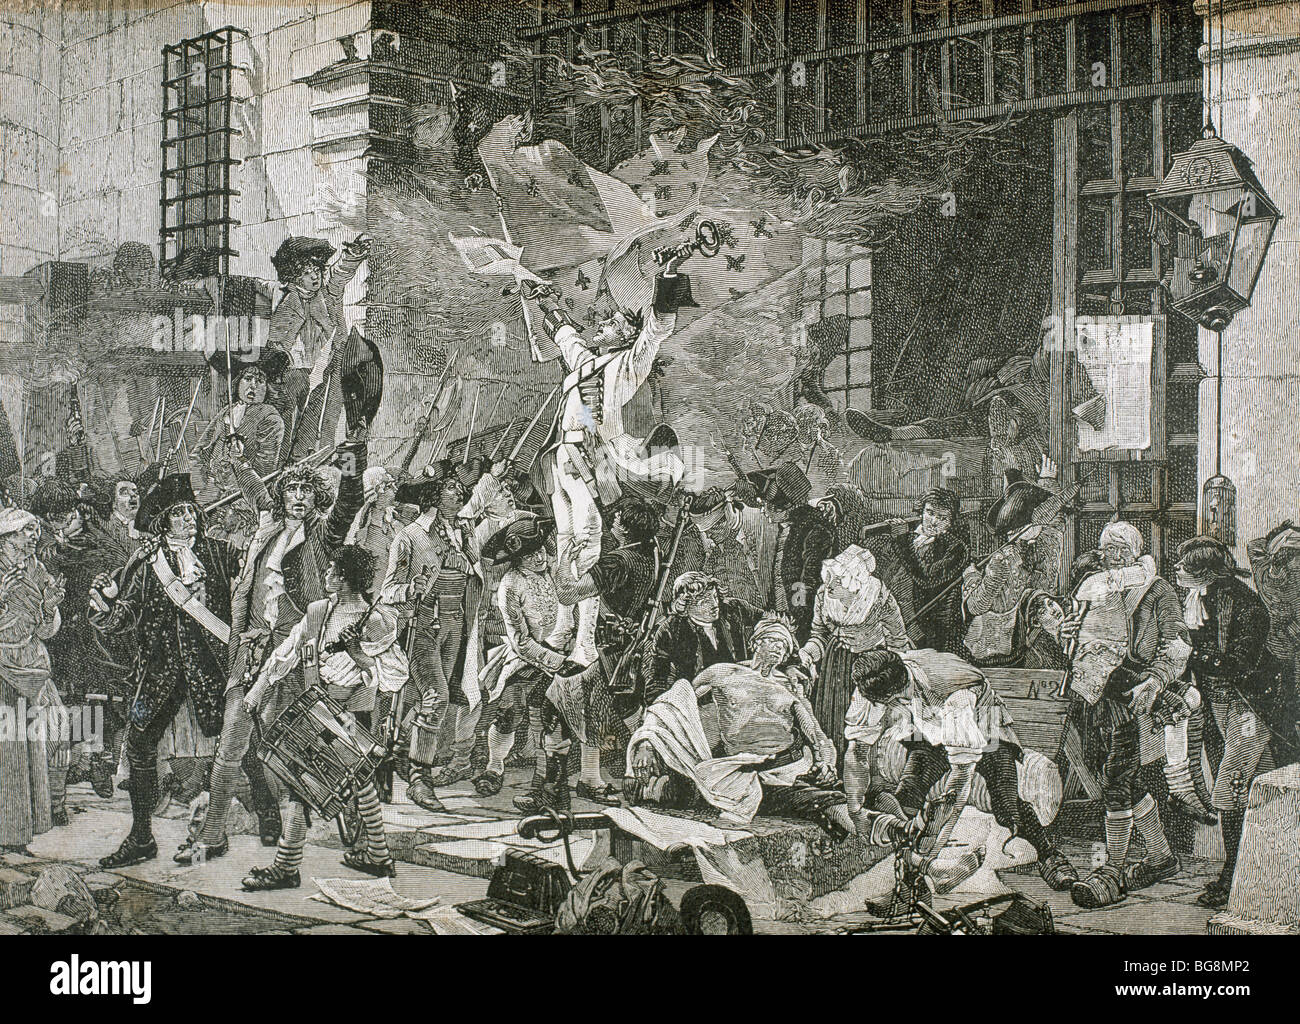 French Revolution. The Storming of the Bastille in Paris occurred ...